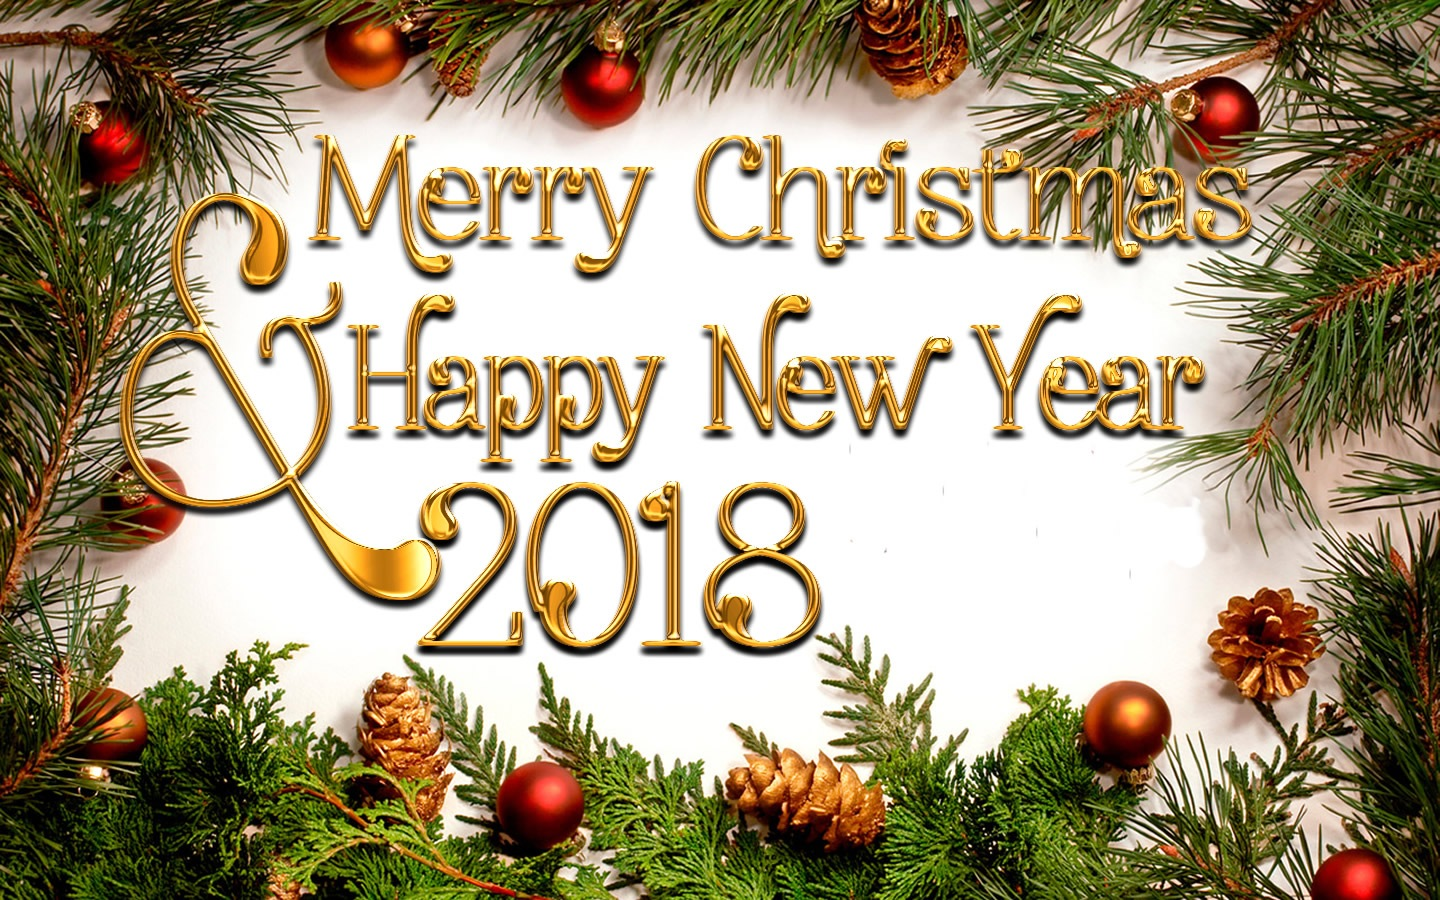 Merry Christmas & Happy New Year 2018 – Agriya Analitika